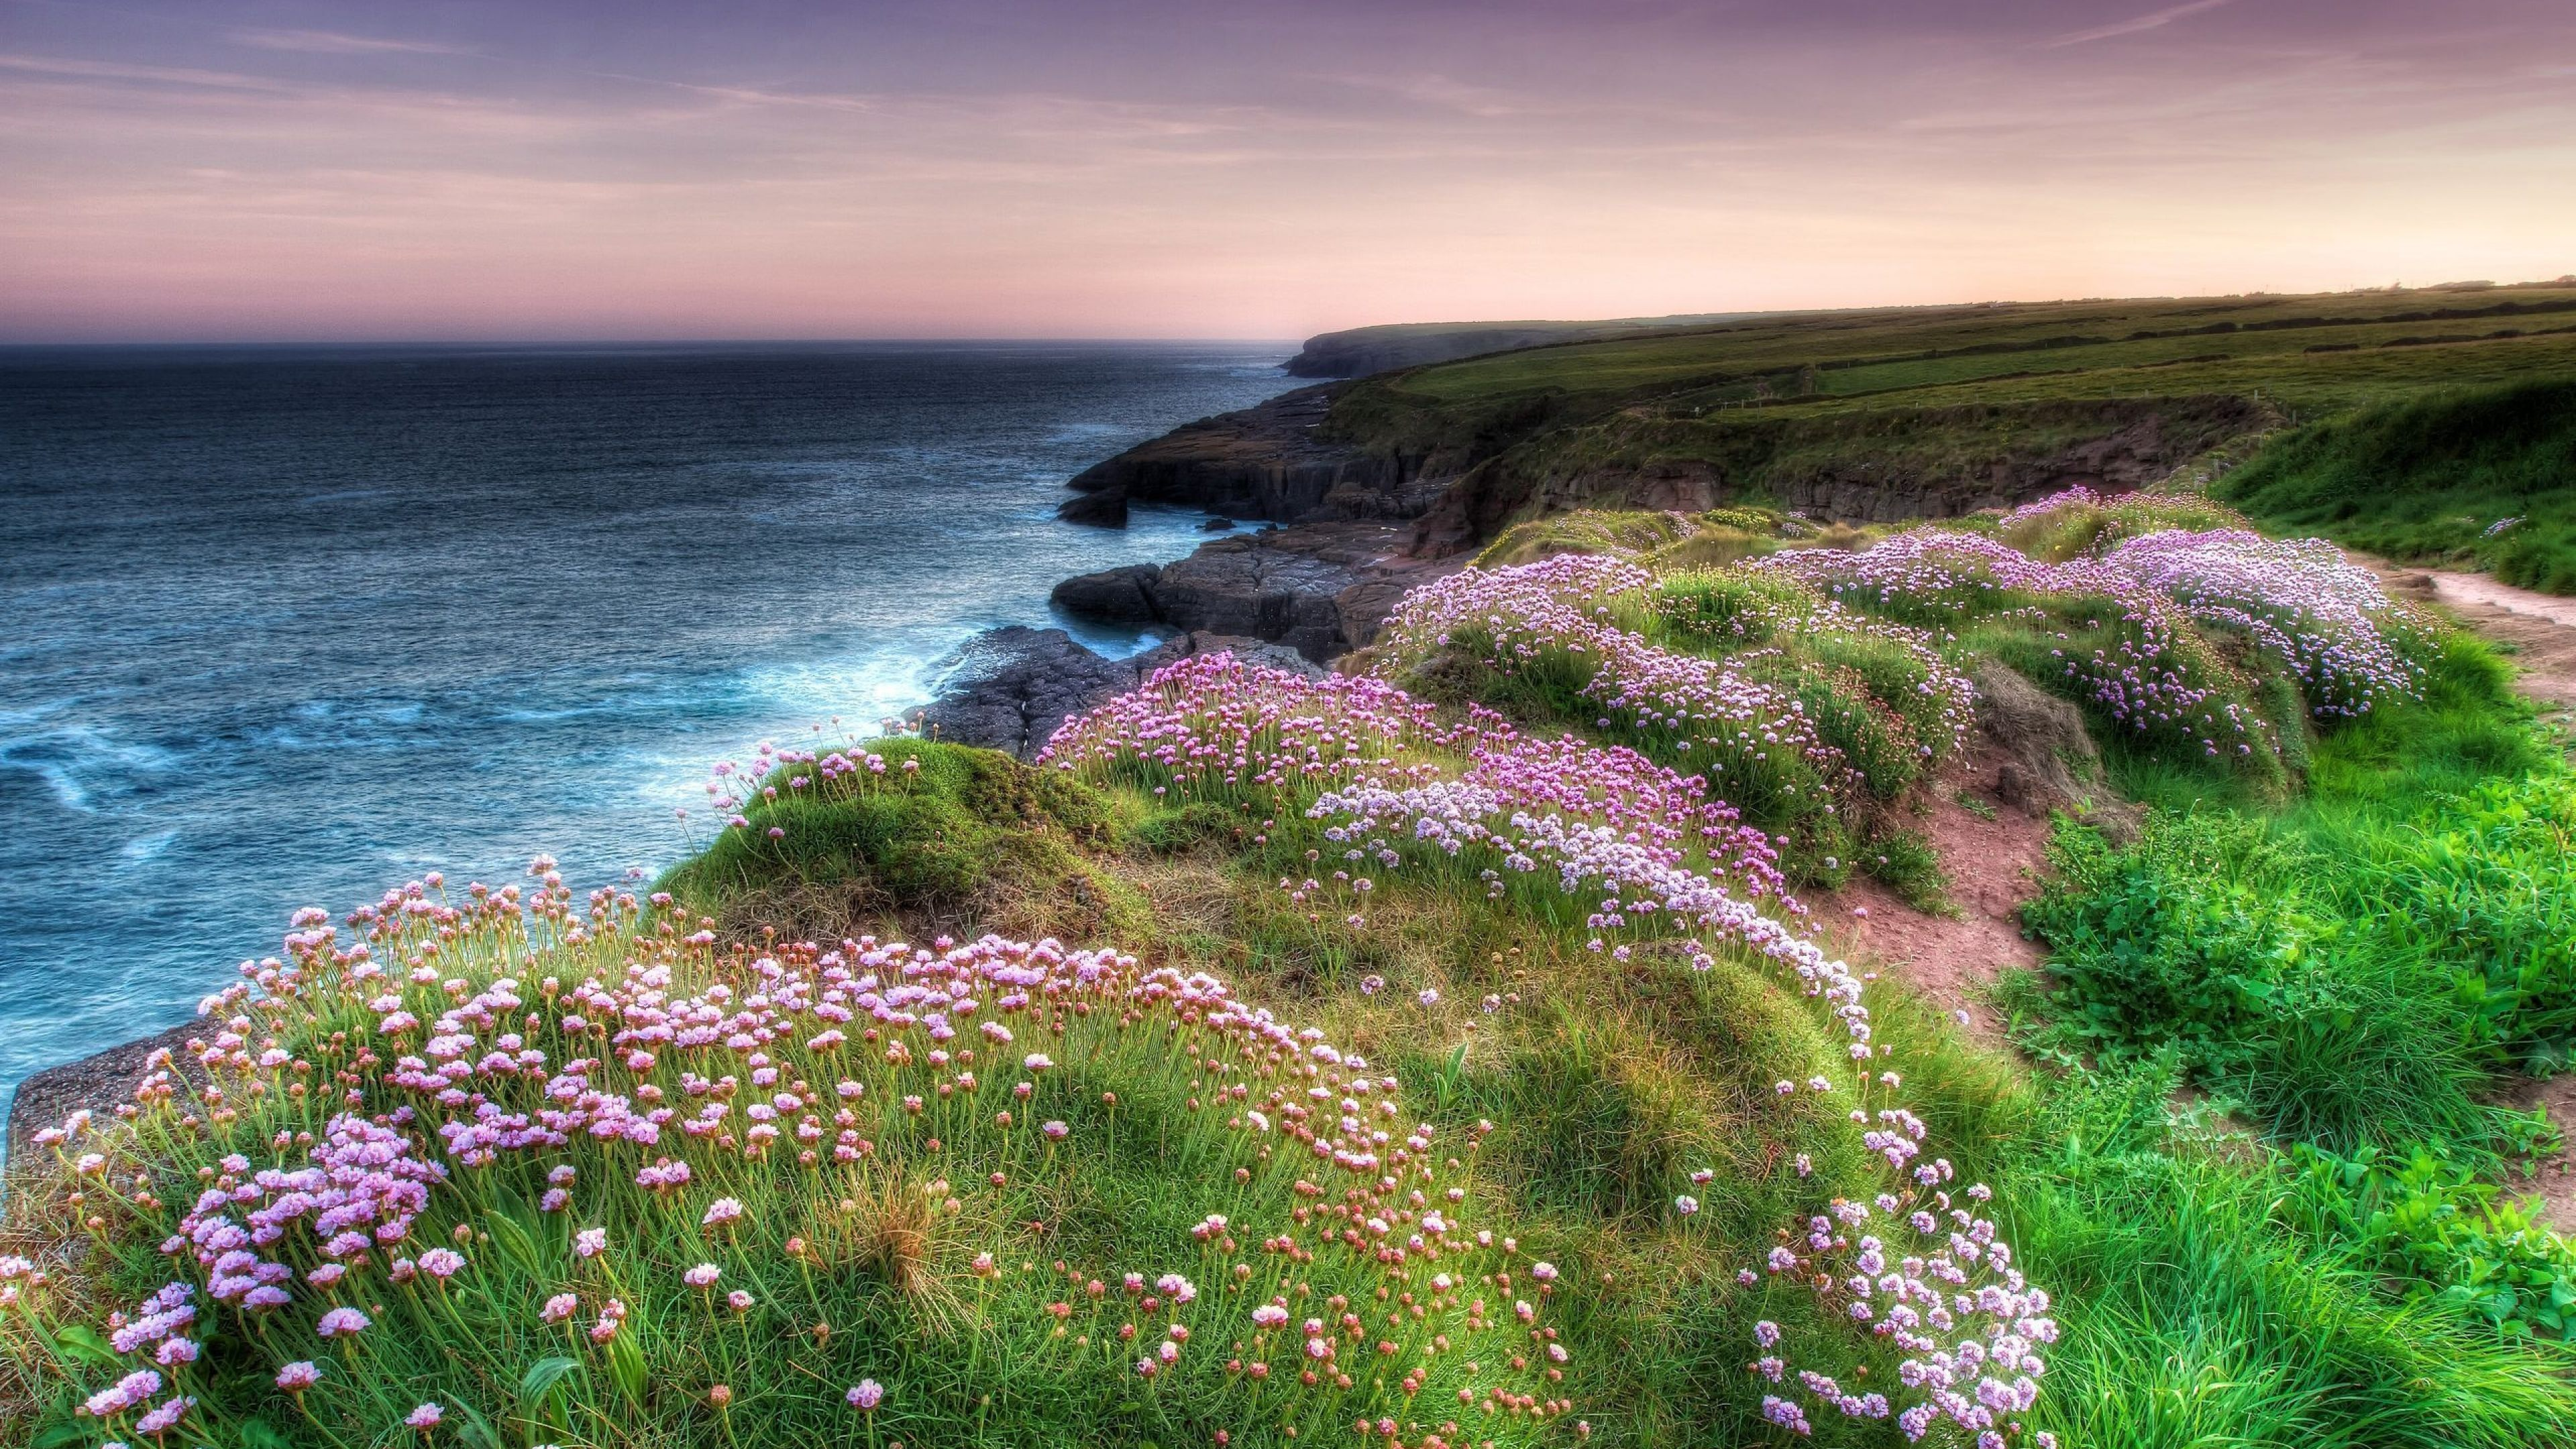 Good Pictures Ireland Wallpaper Amazing Ireland Images 3840x2160